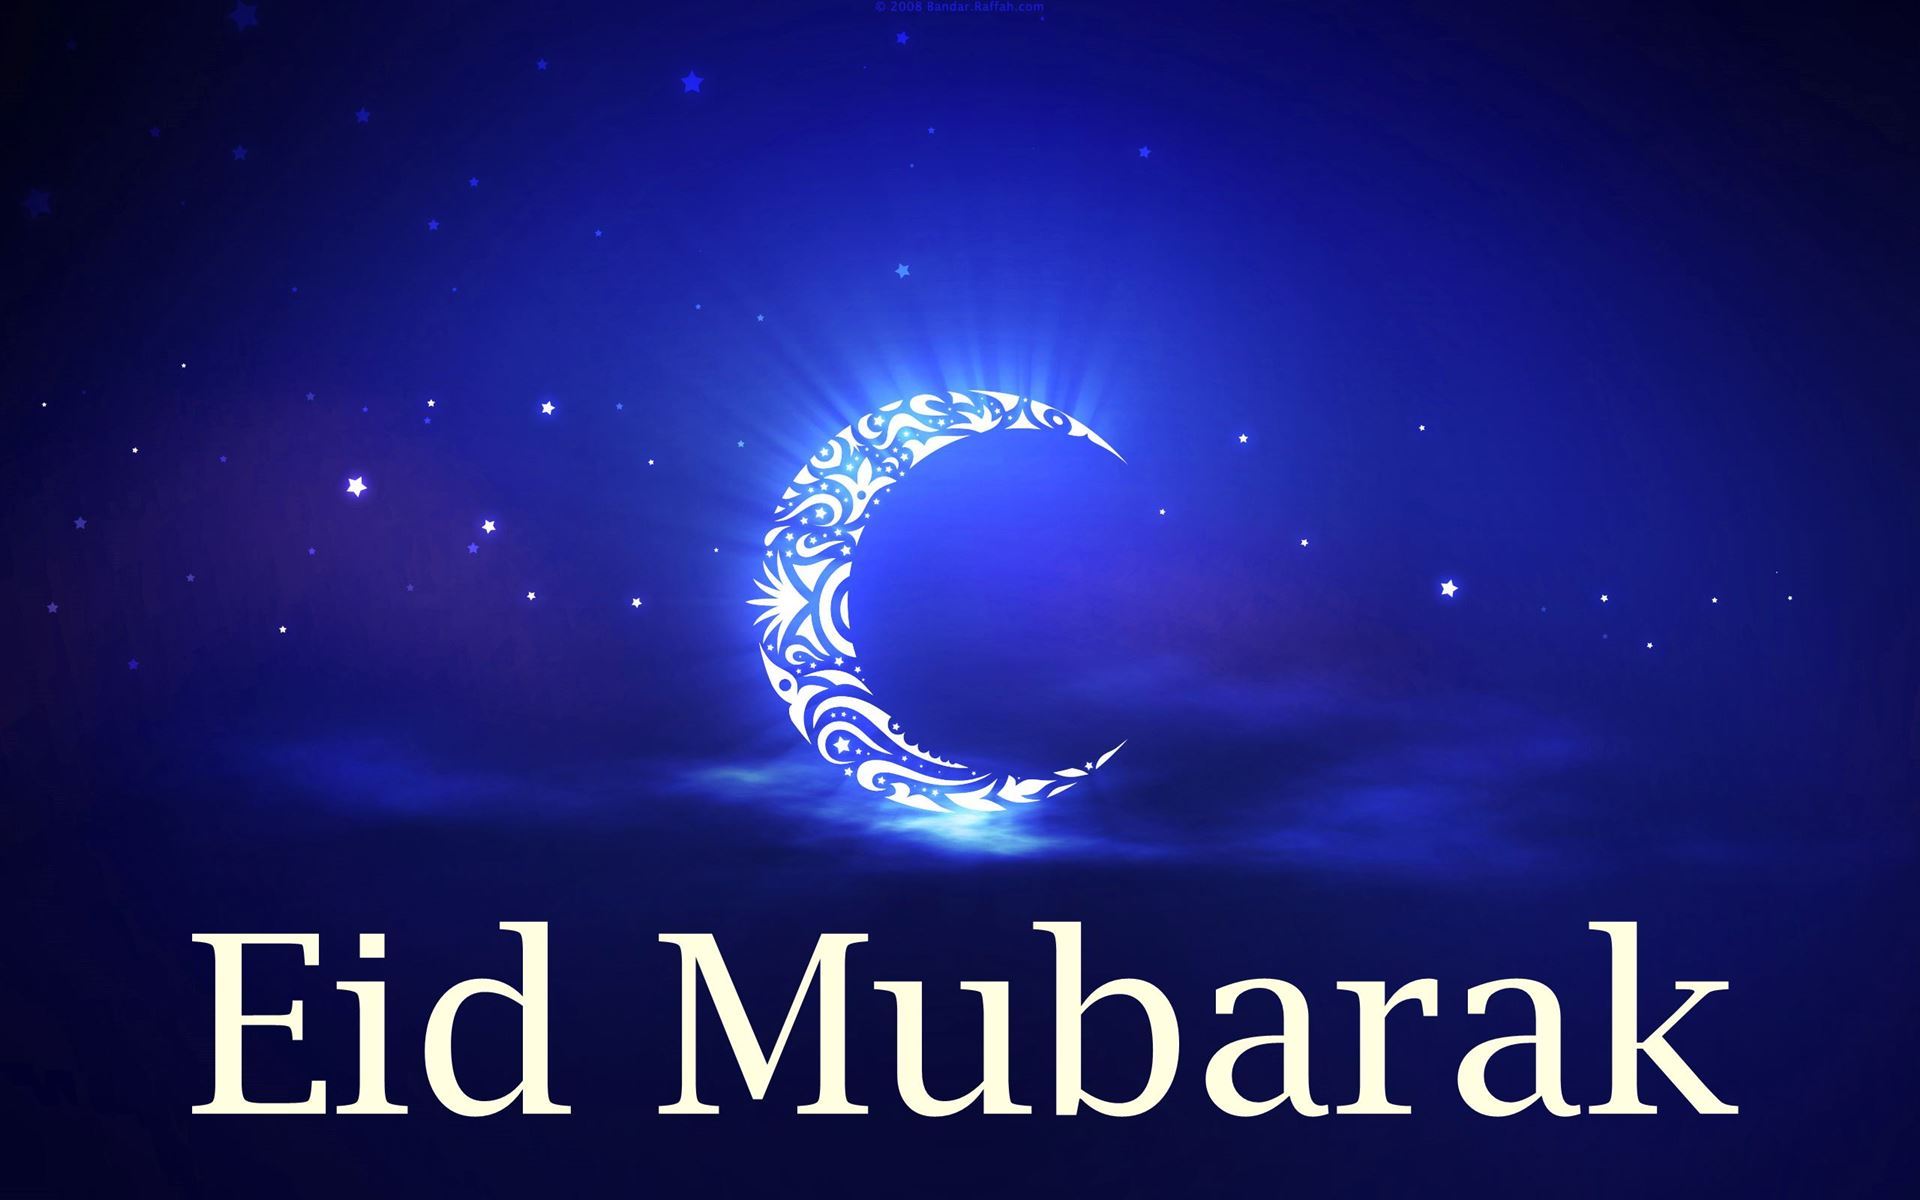 Eid Mubarak 2017 Images for Facebook